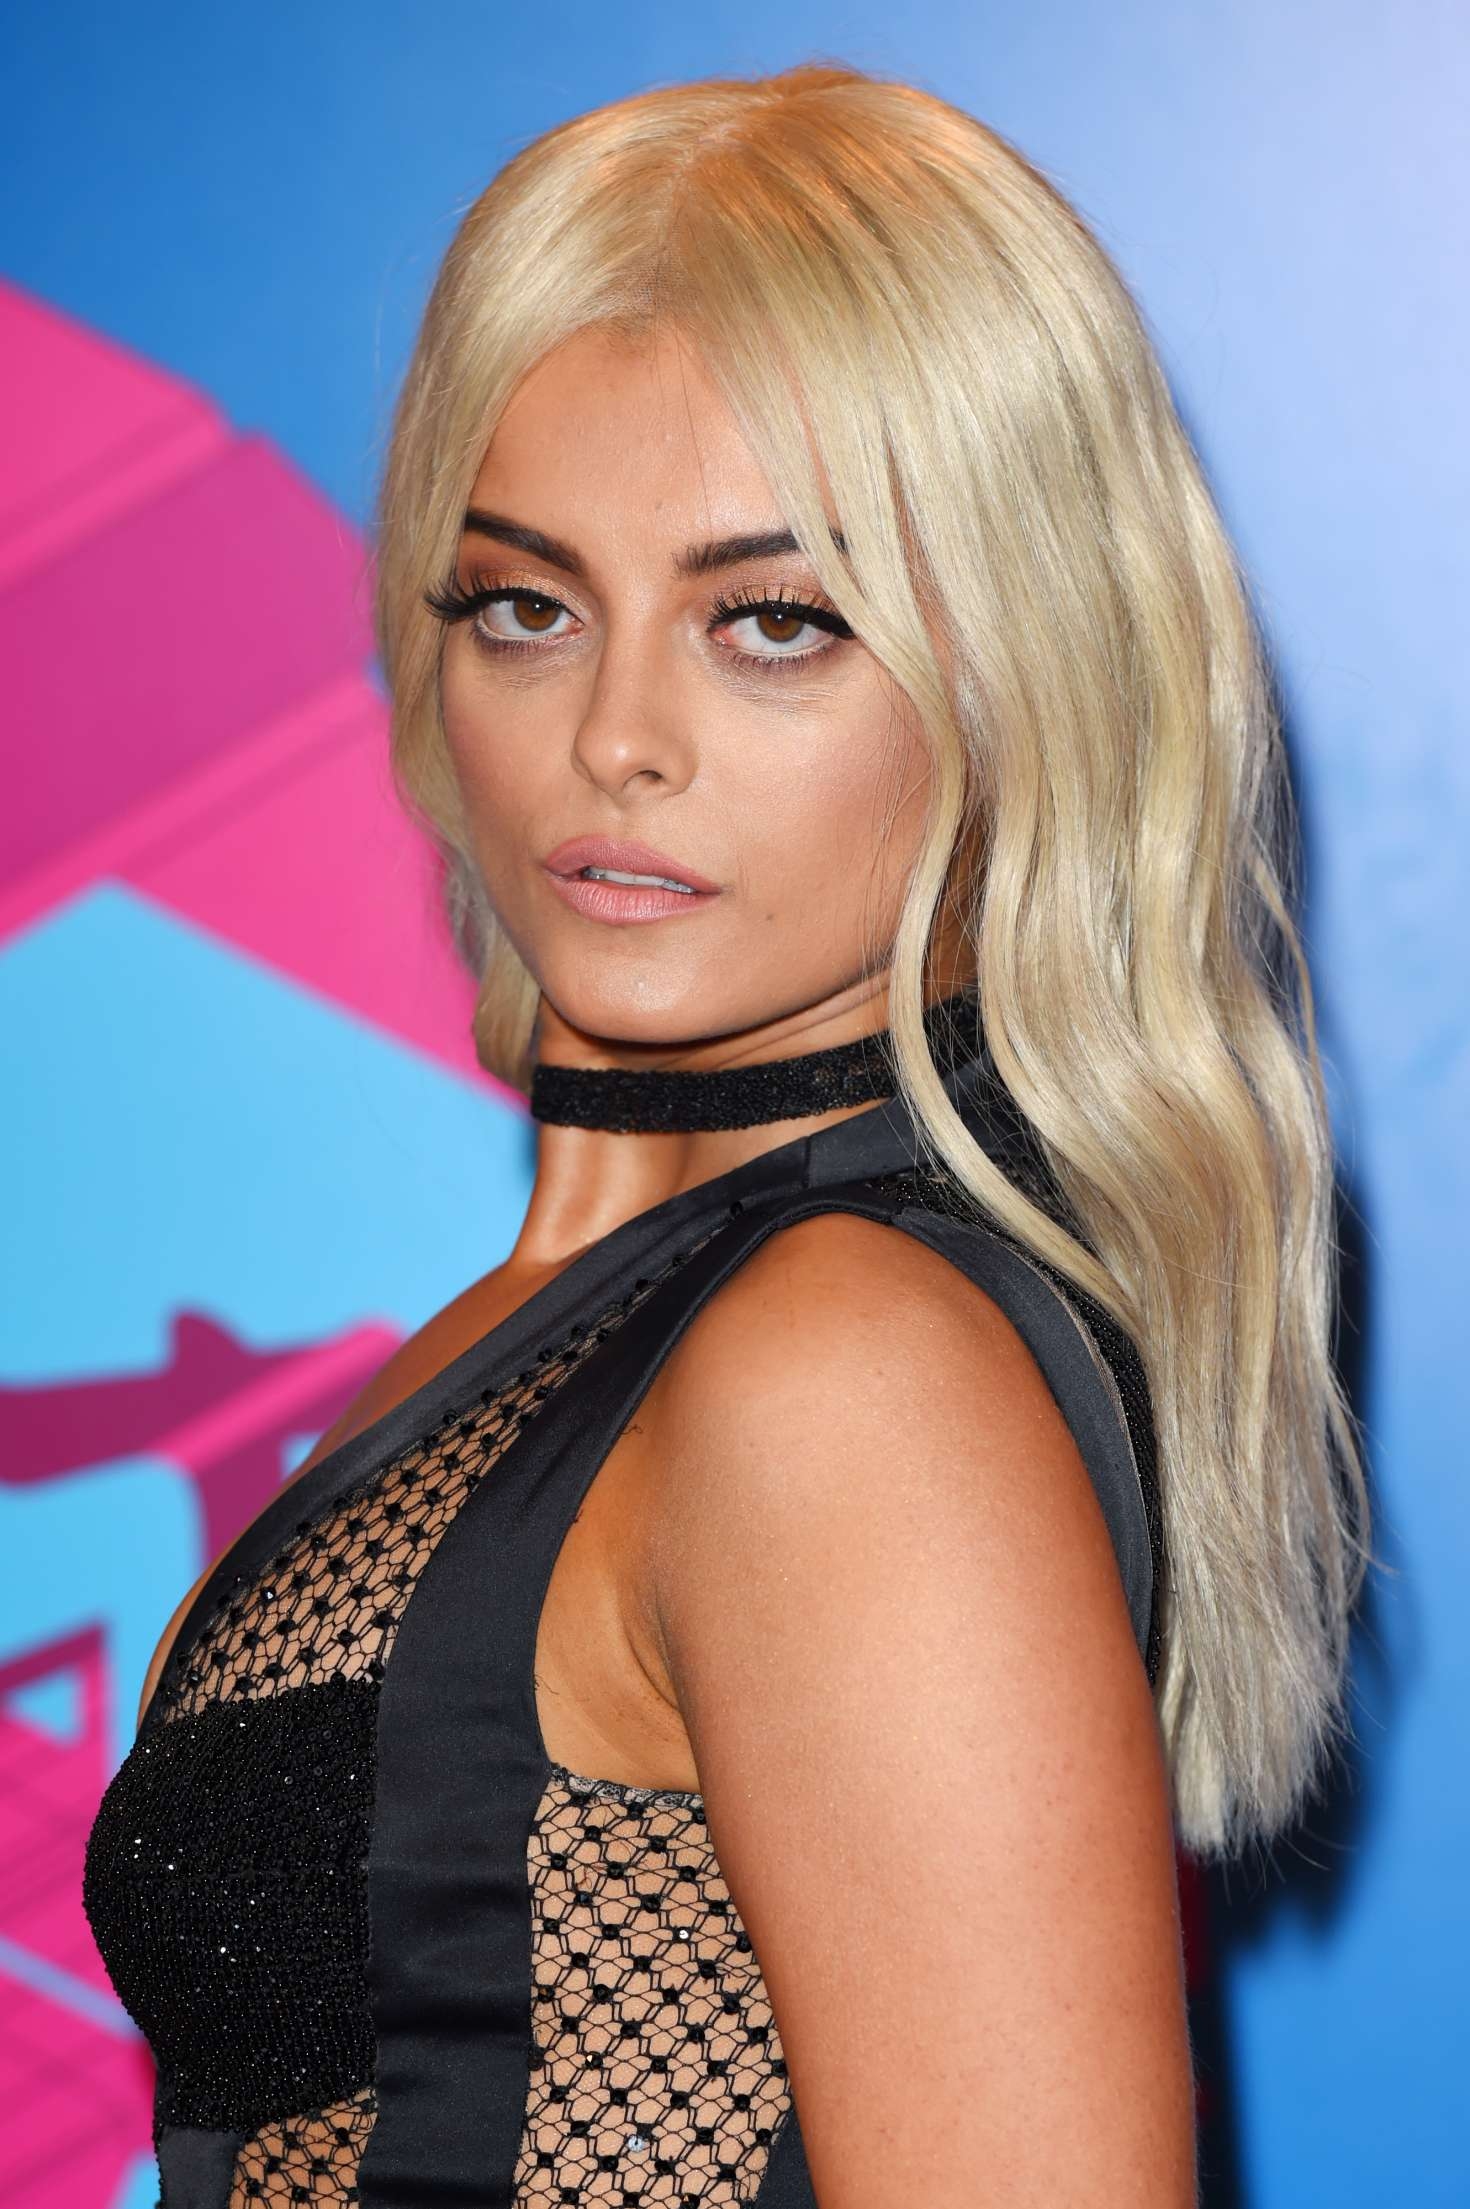 Bebe Rexha Plastic Surgery Before And After photo - 1